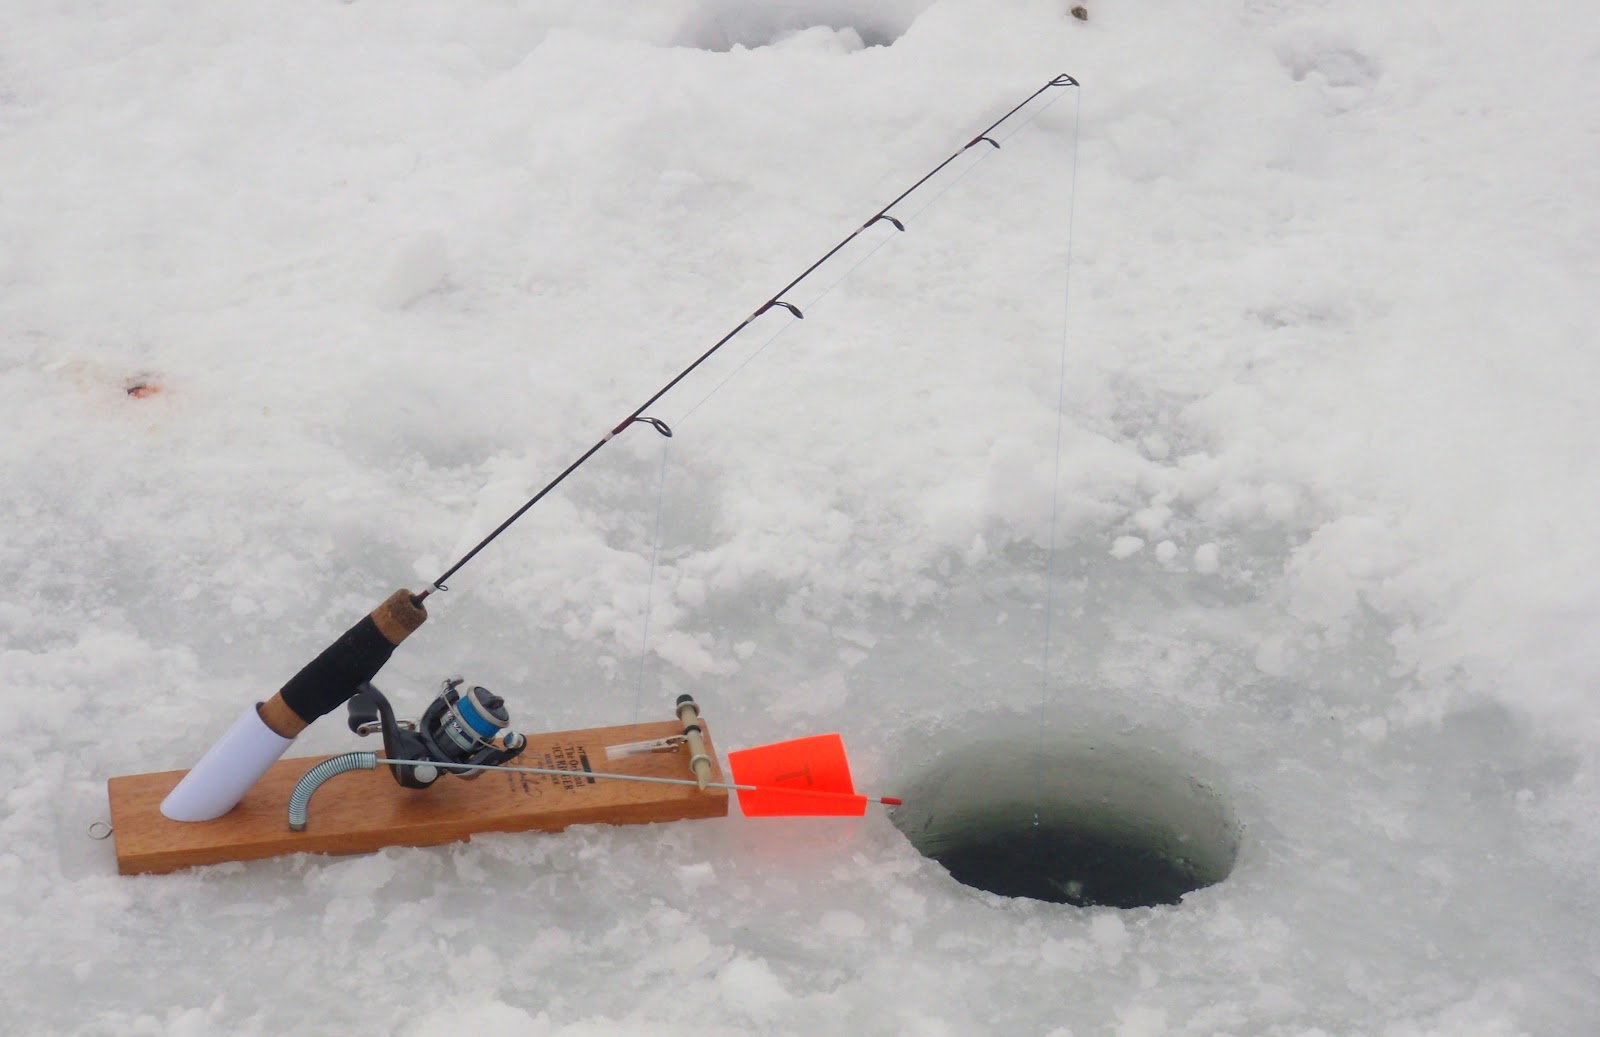 Bass junkies fishing addiction on the ice dead stickin for Jaw jacker ice fishing